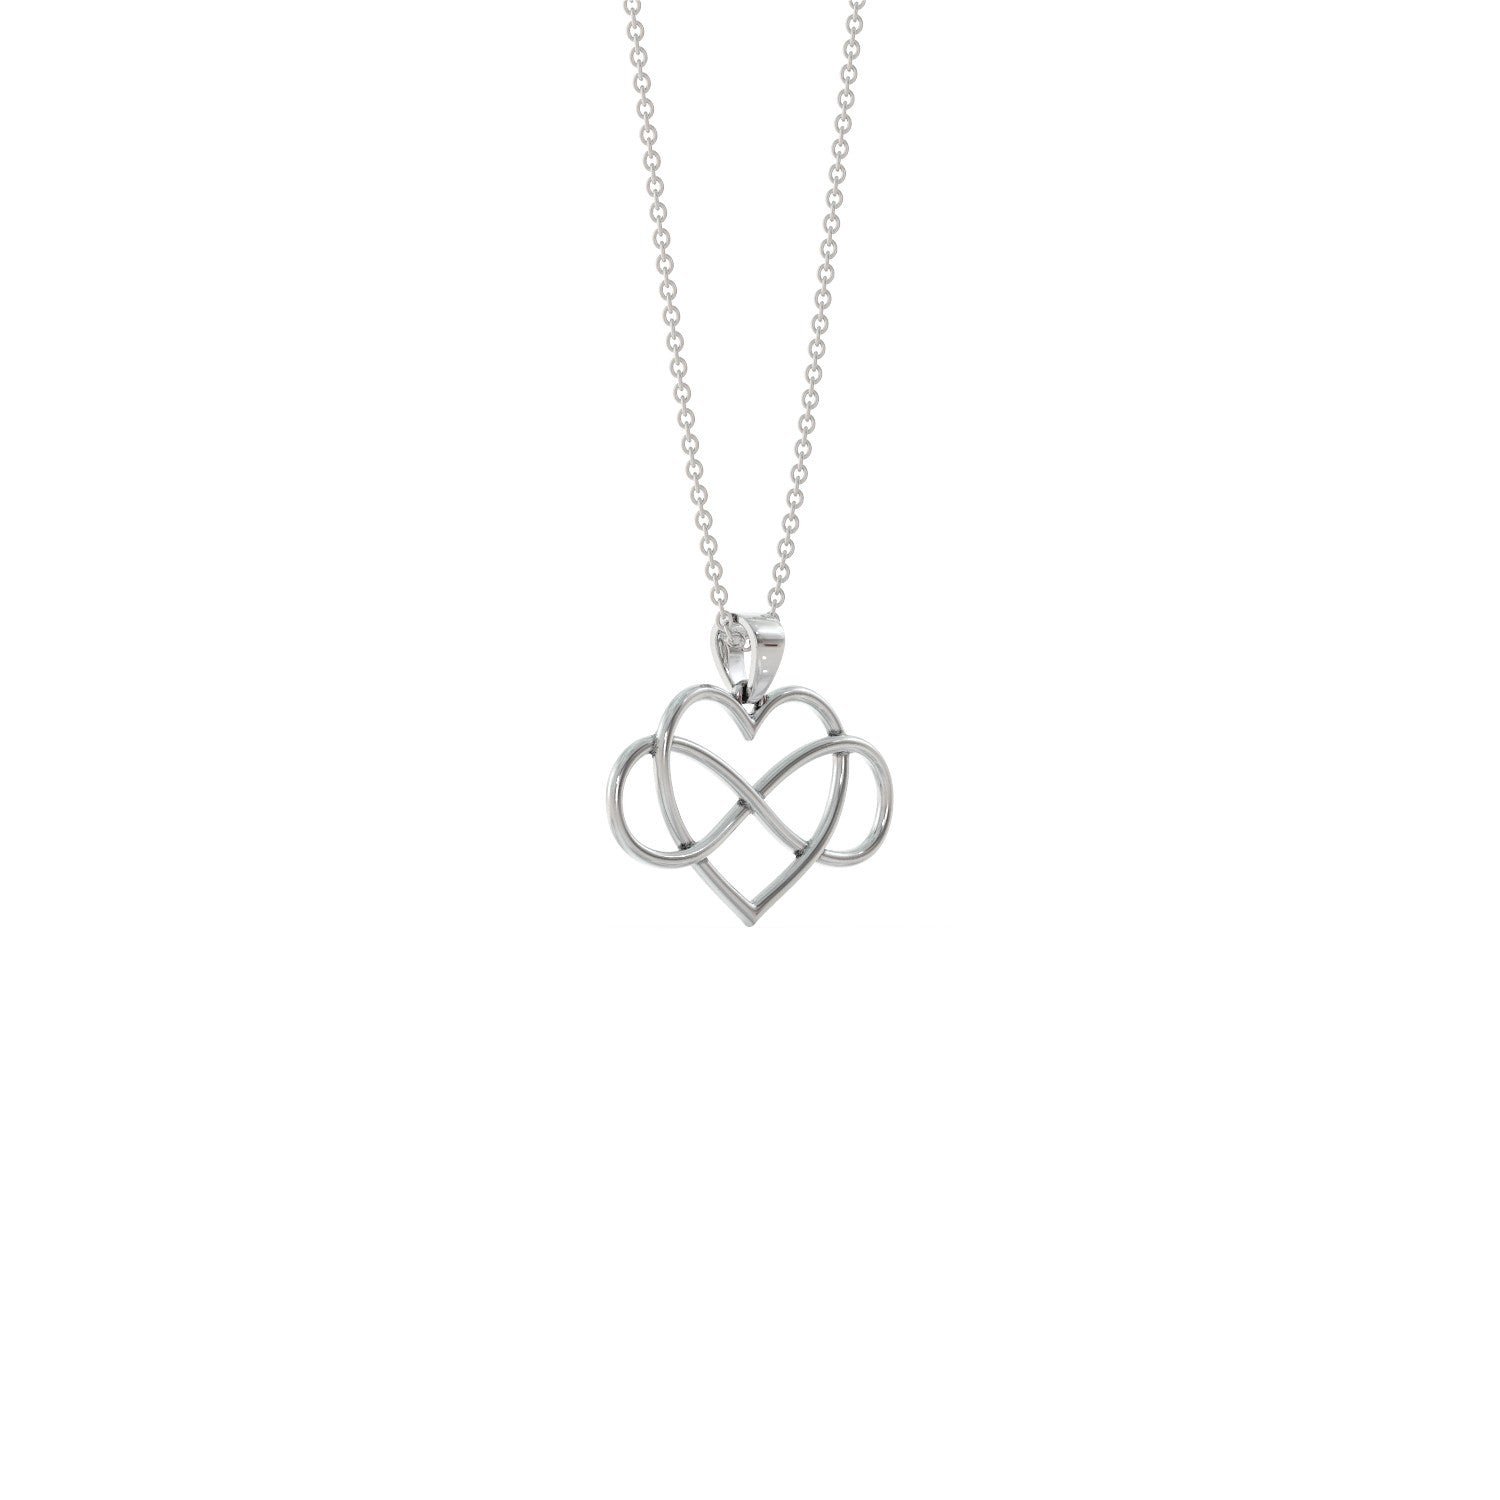 Heart Infinity Necklace